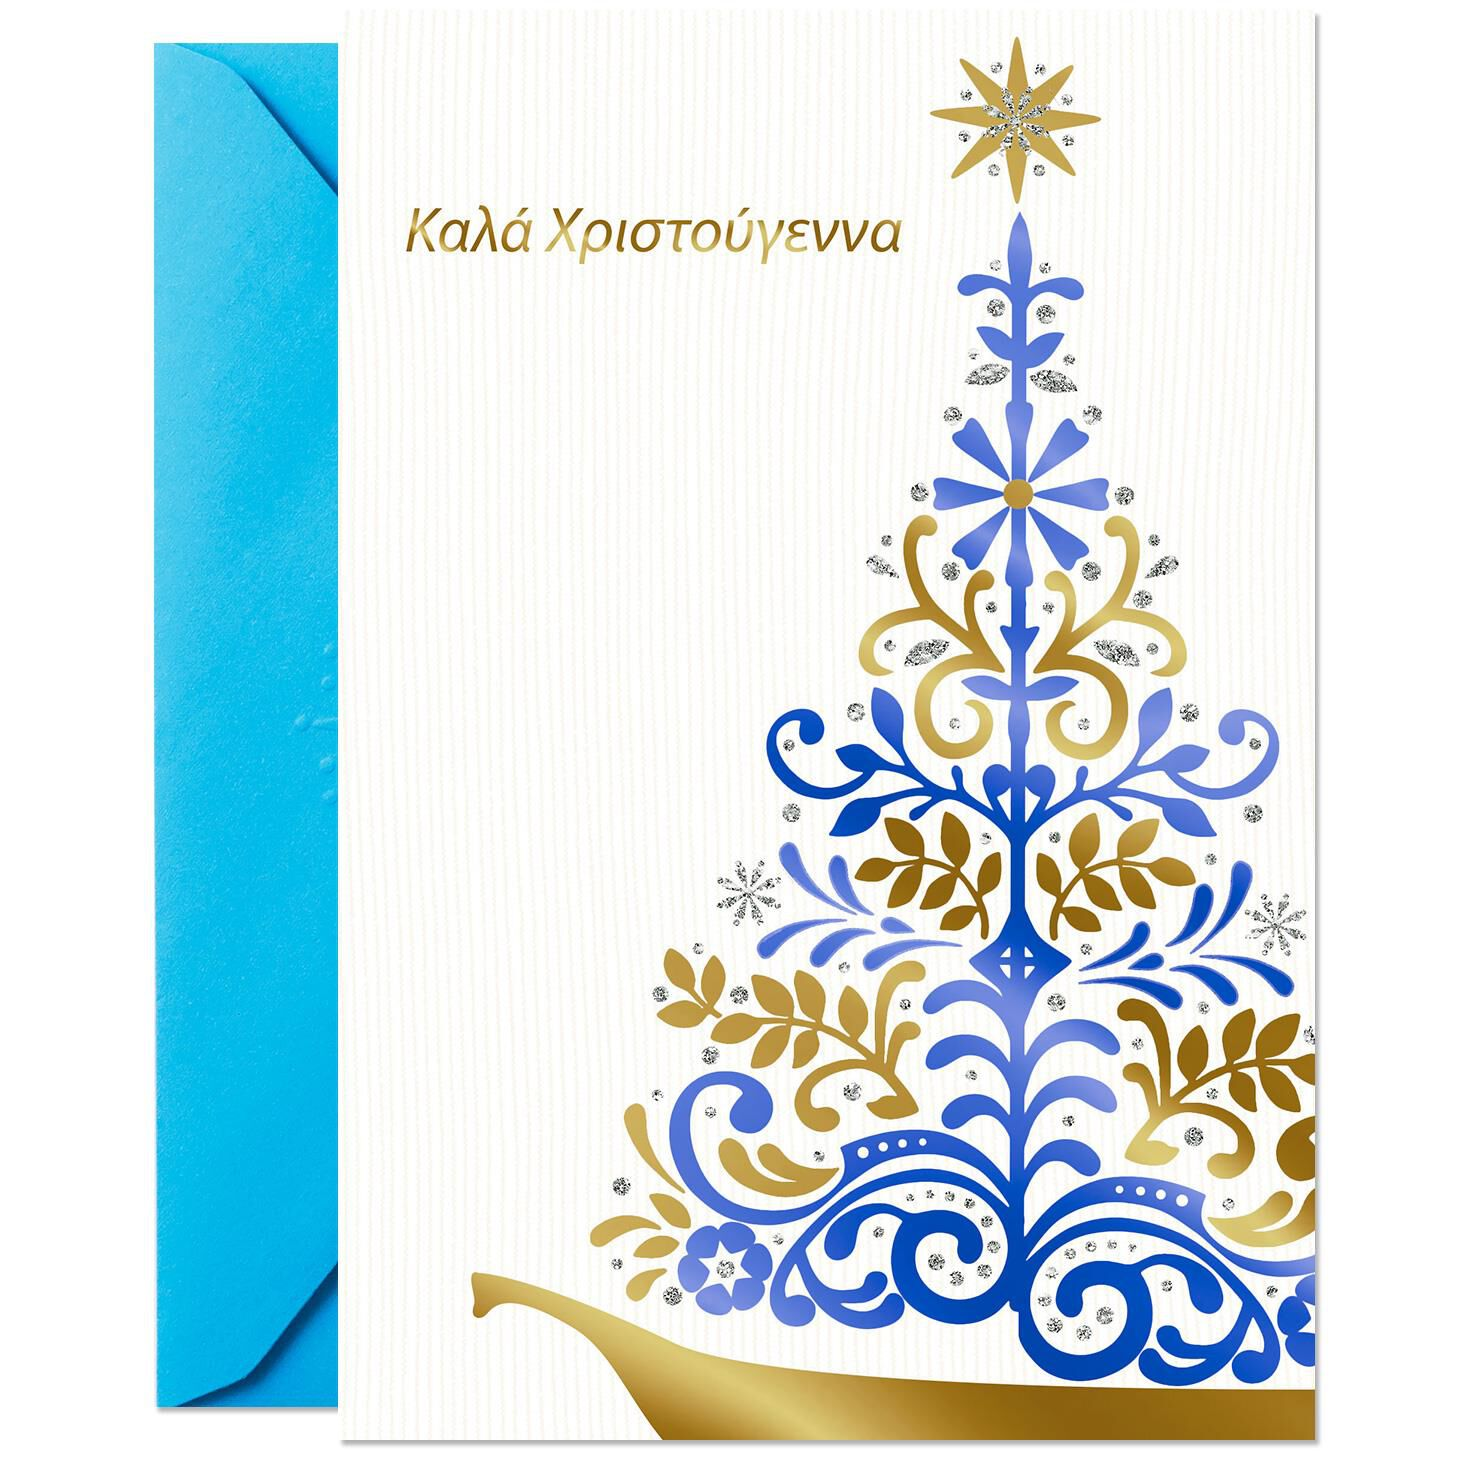 Greek Language A Season Bright And Blessed Greek Language Christmas Card